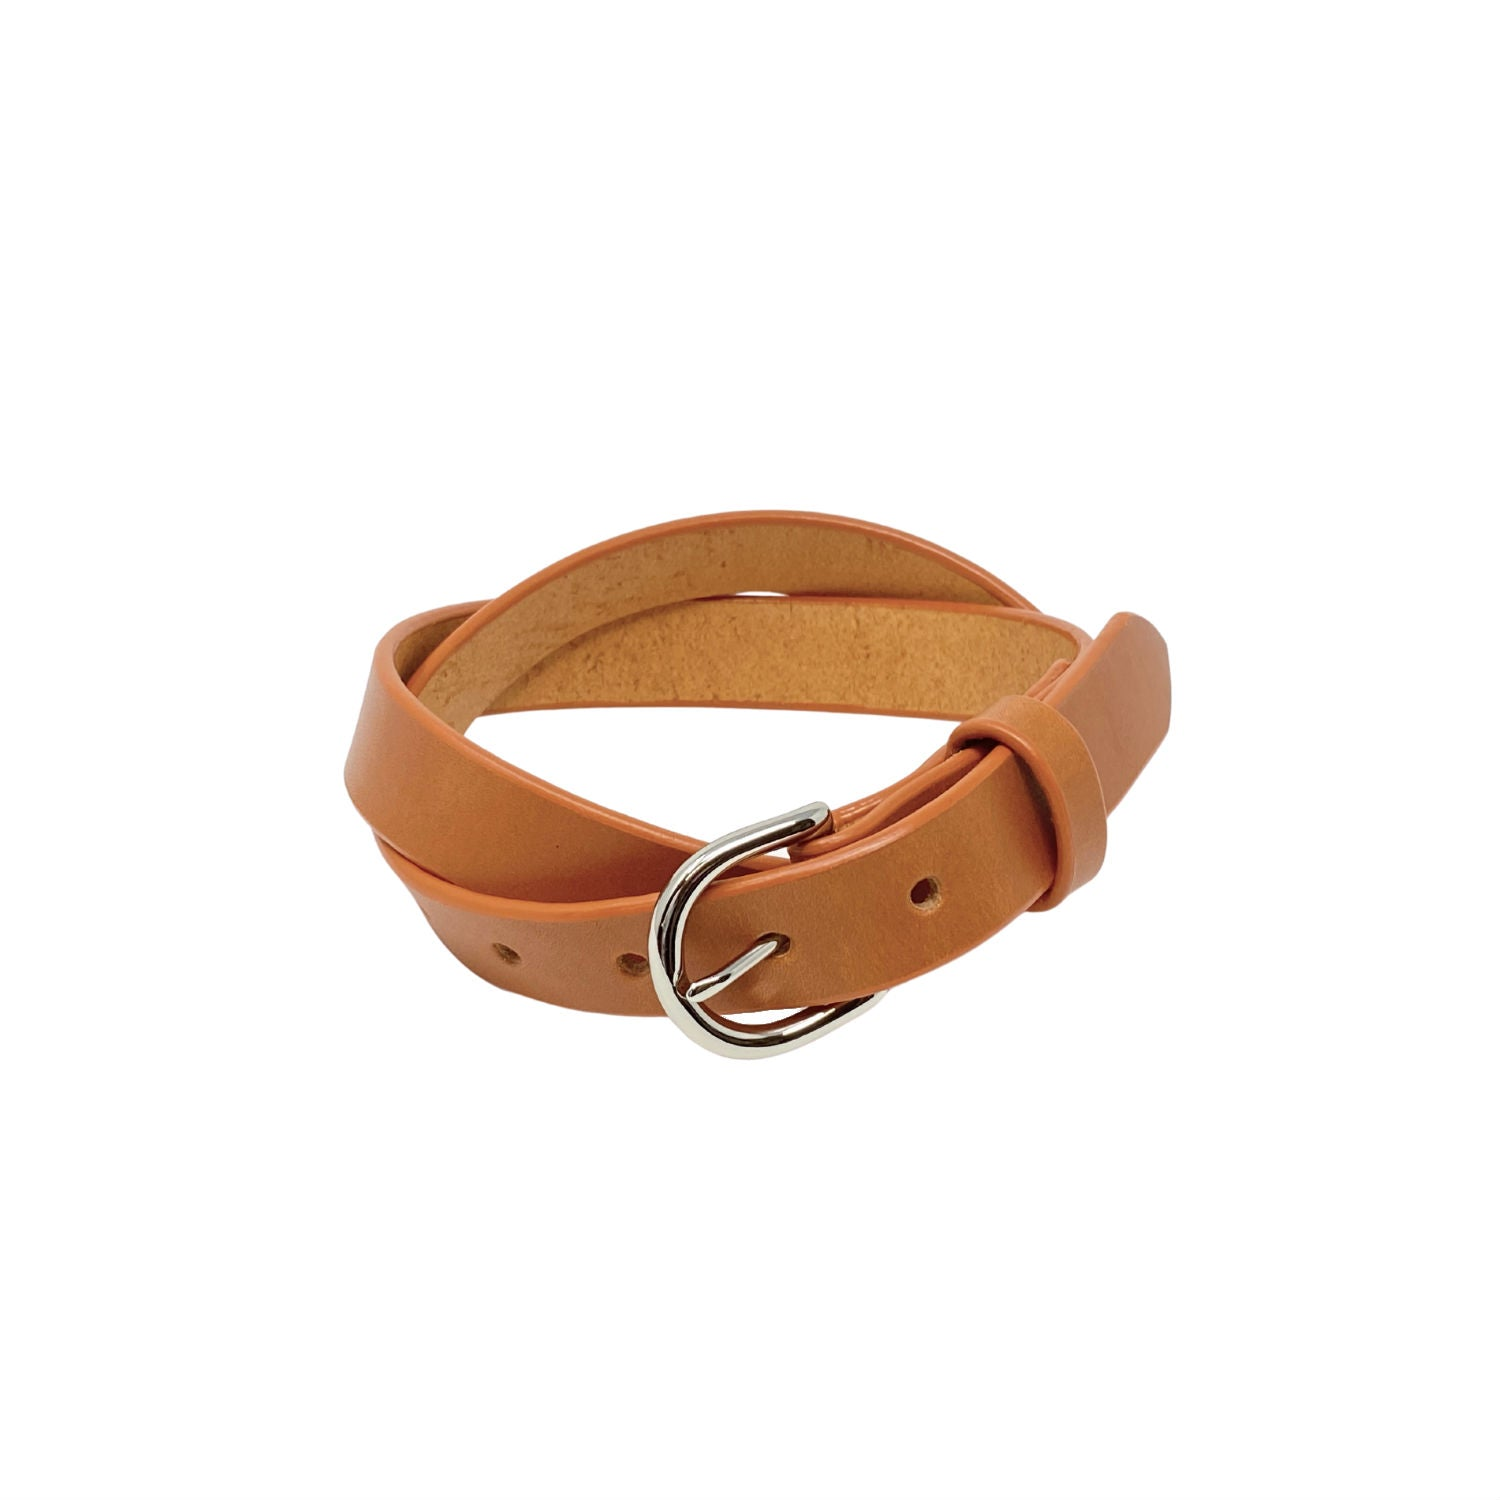 "Last State Leather - Everyday 1"" Belt - Tan/Nickel"